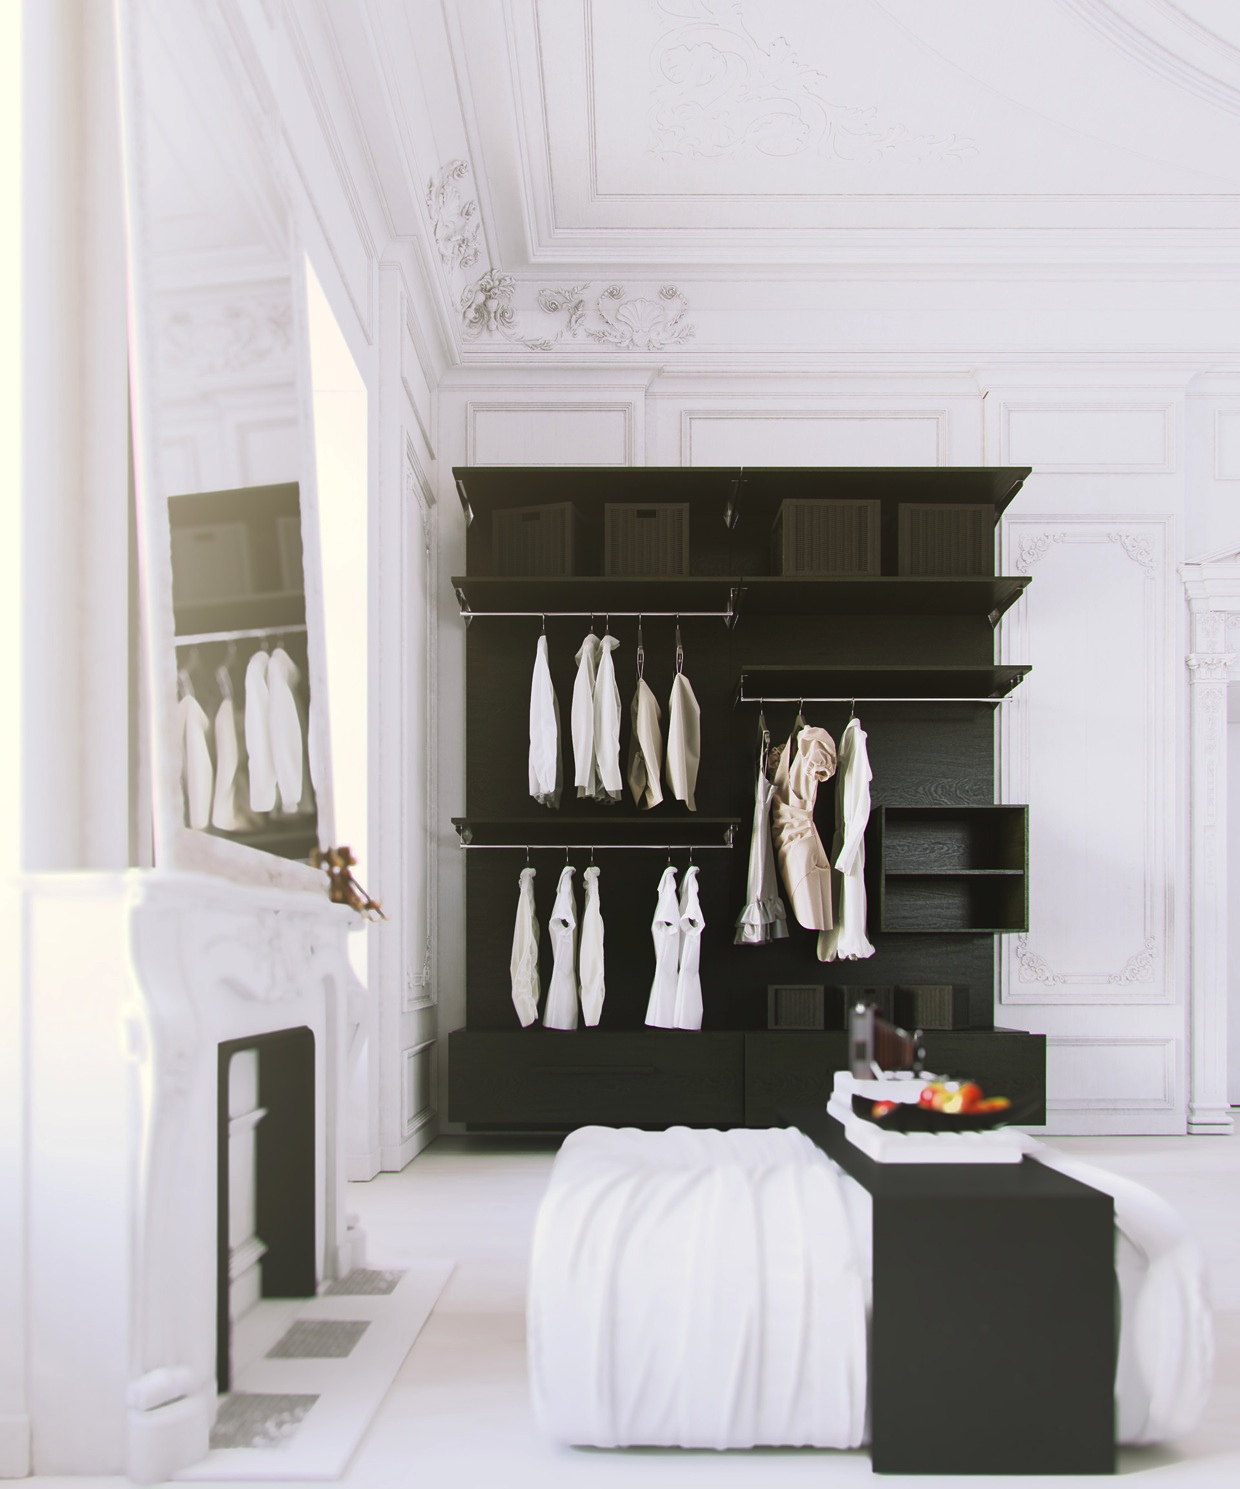 Bedroom Interior Design Black And White Bedroom Ceiling Design In India Wall Decor For Mens Bedroom Sherwin Williams Bedroom Paint Ideas: Scandinavian & Parisian Apartments In White